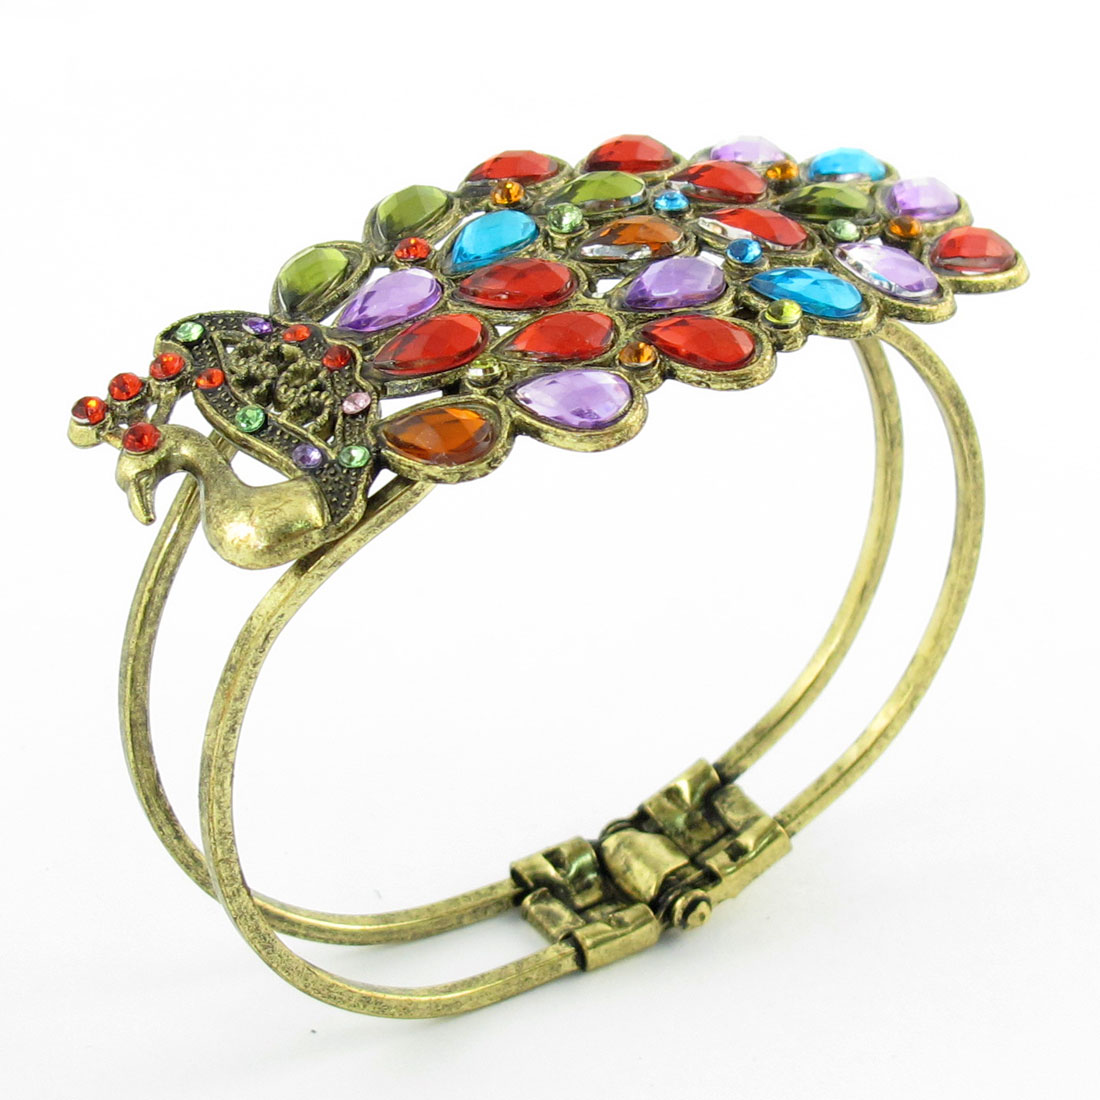 Red Green Rhinestone Inlaid Peacock Design Bronze Tone Bracelet for Ladies